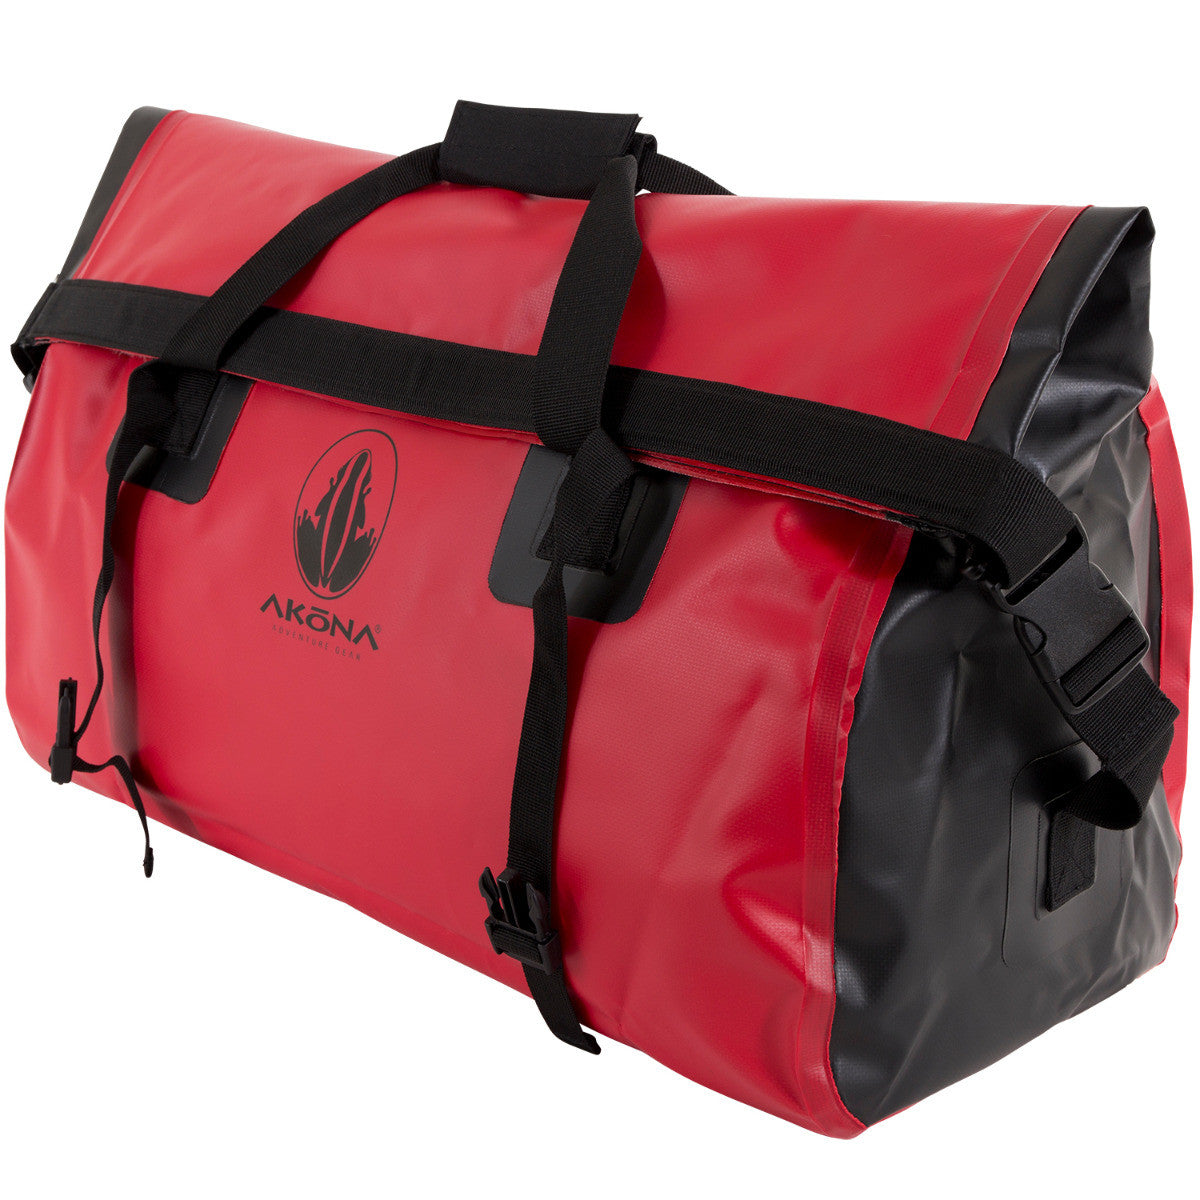 Akona Large Dry Bag Duffel With Roll Top And Compression Straps Hand Rolling Compressed